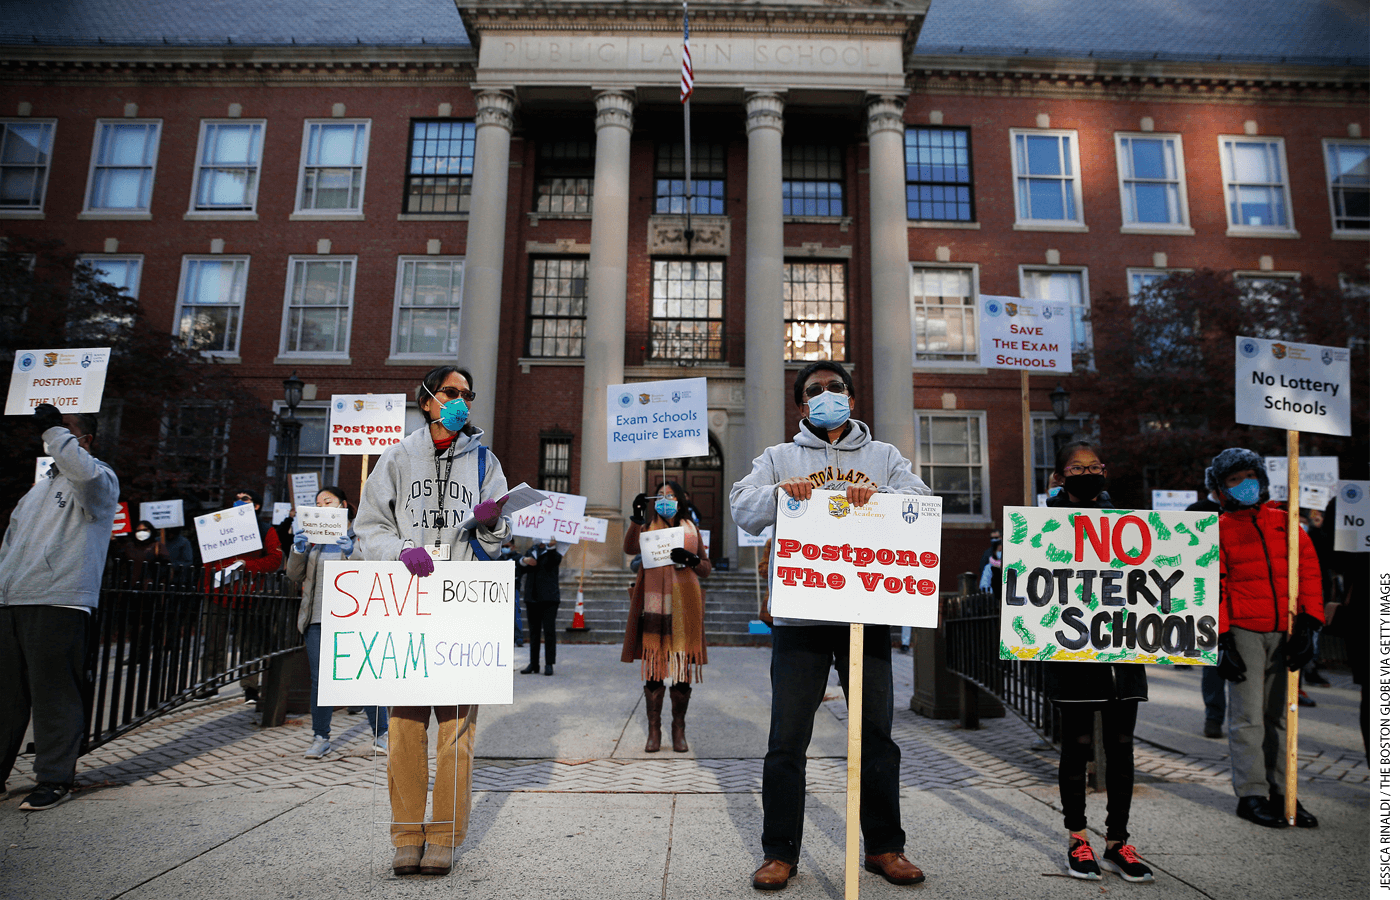 Protesters calling for Boston schools to keep the admissions exam in place for exam schools rally outside of Boston Latin School in Boston on October 18, 2020.